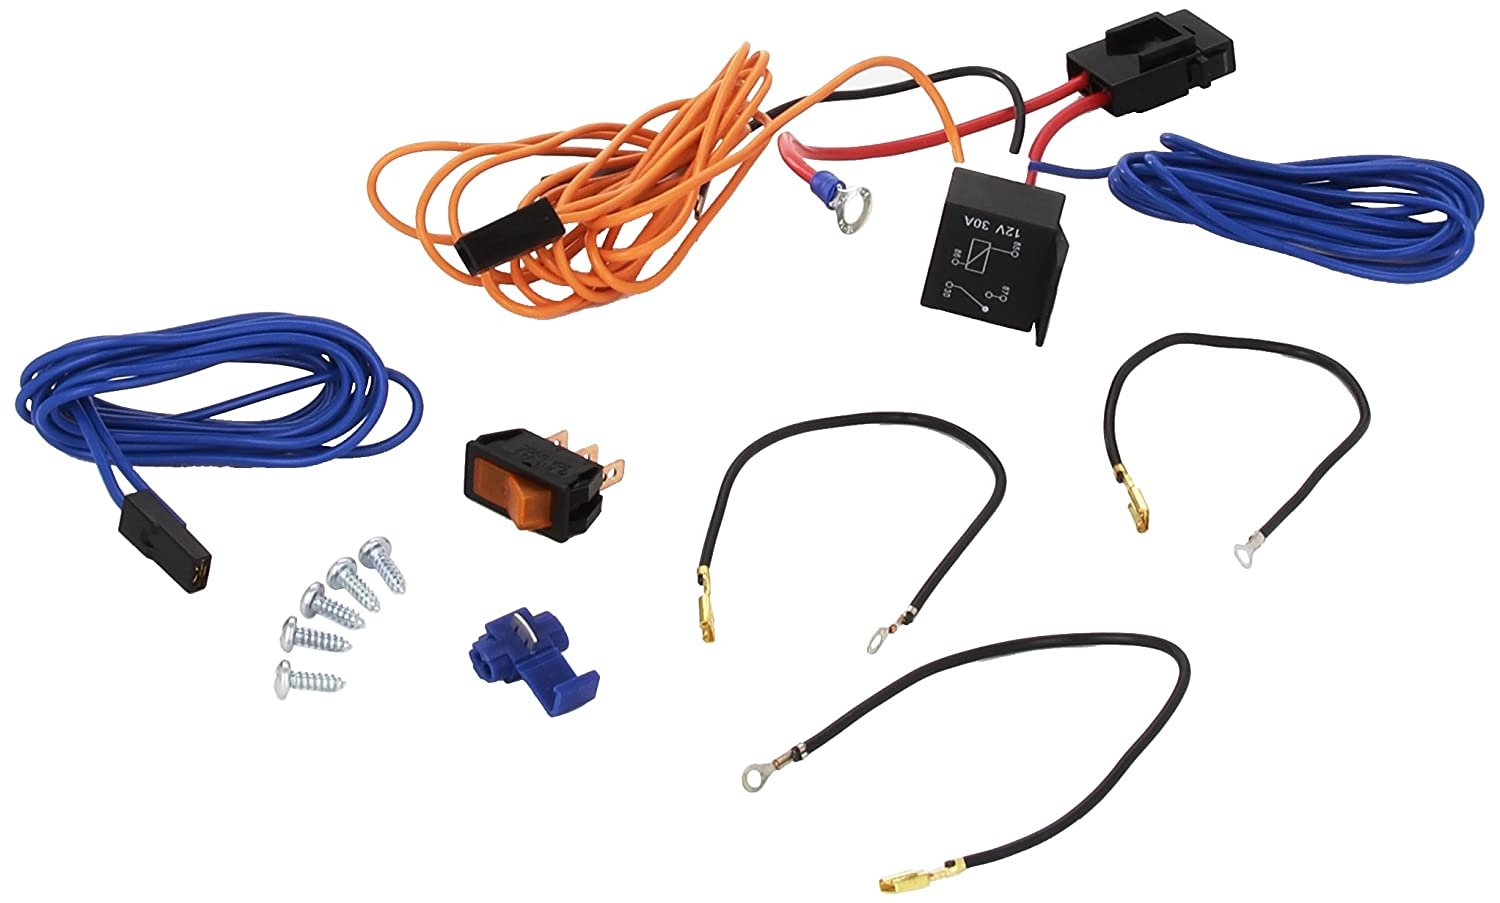 Ring Automotive Rlfk200 Professional Pre Wired Accessory Lighting Wiring Up Spotlights Fitting Kit Car Motorbike